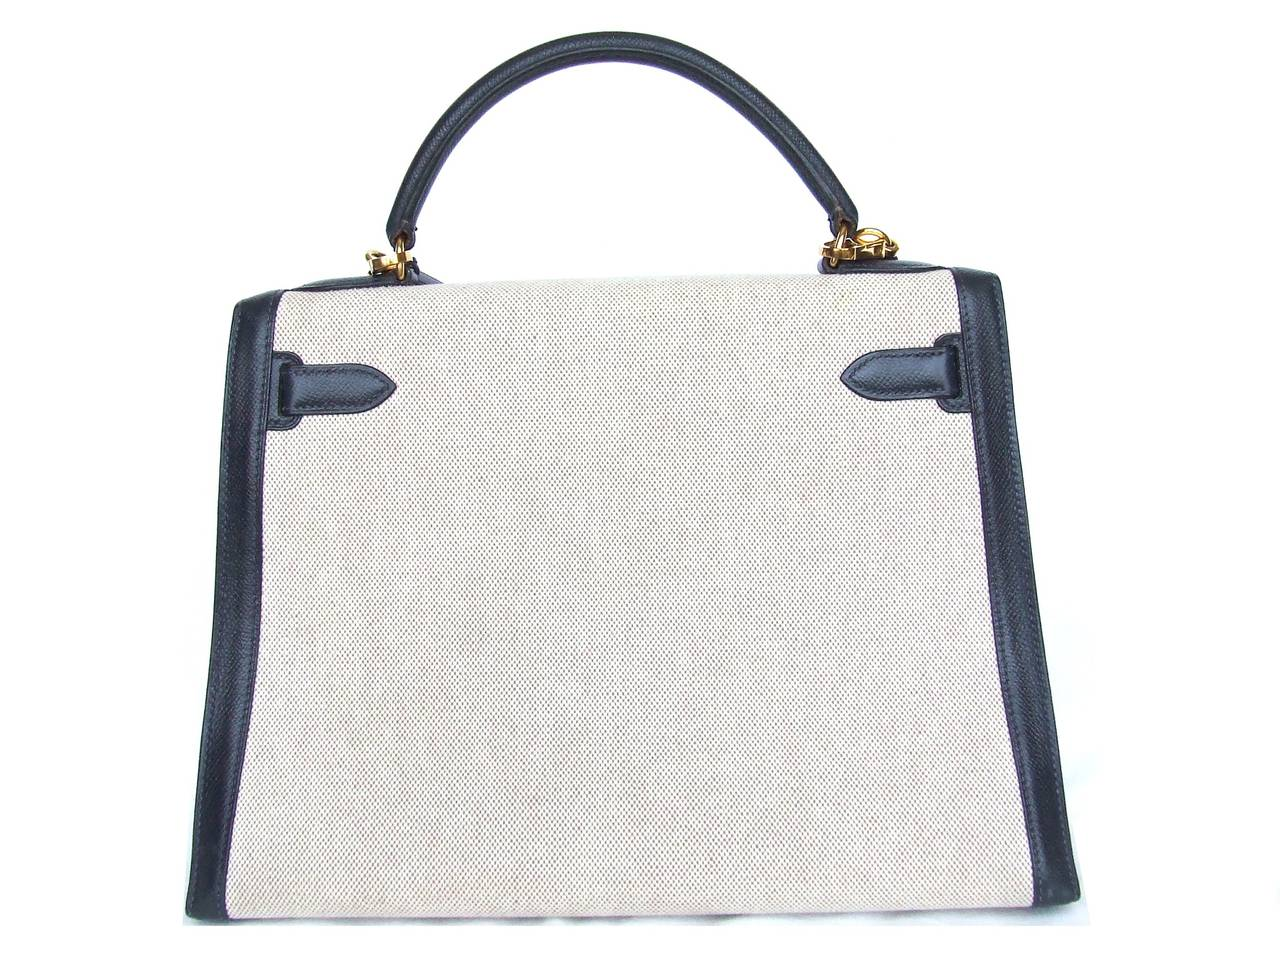 Authentic Hermes Kelly 32 Bag Sellier Bi Matiere Canvas Leather ...